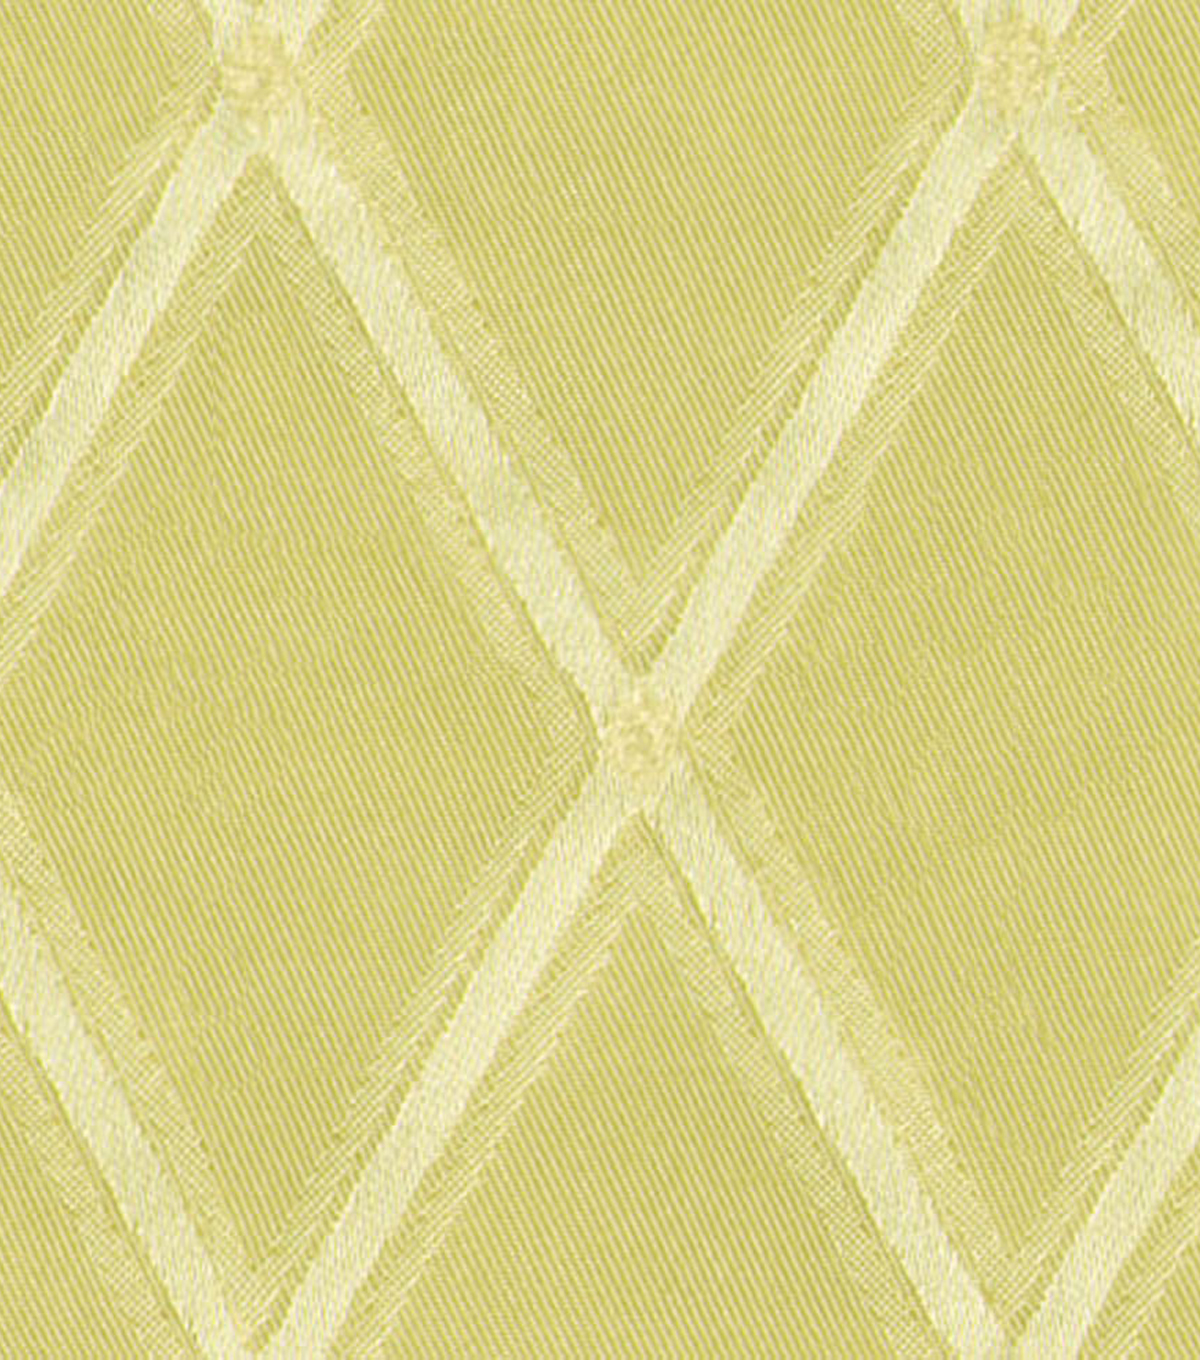 Home Decor 8\u0022x8\u0022 Fabric Swatch-Barrow M6951-5821 Champagne